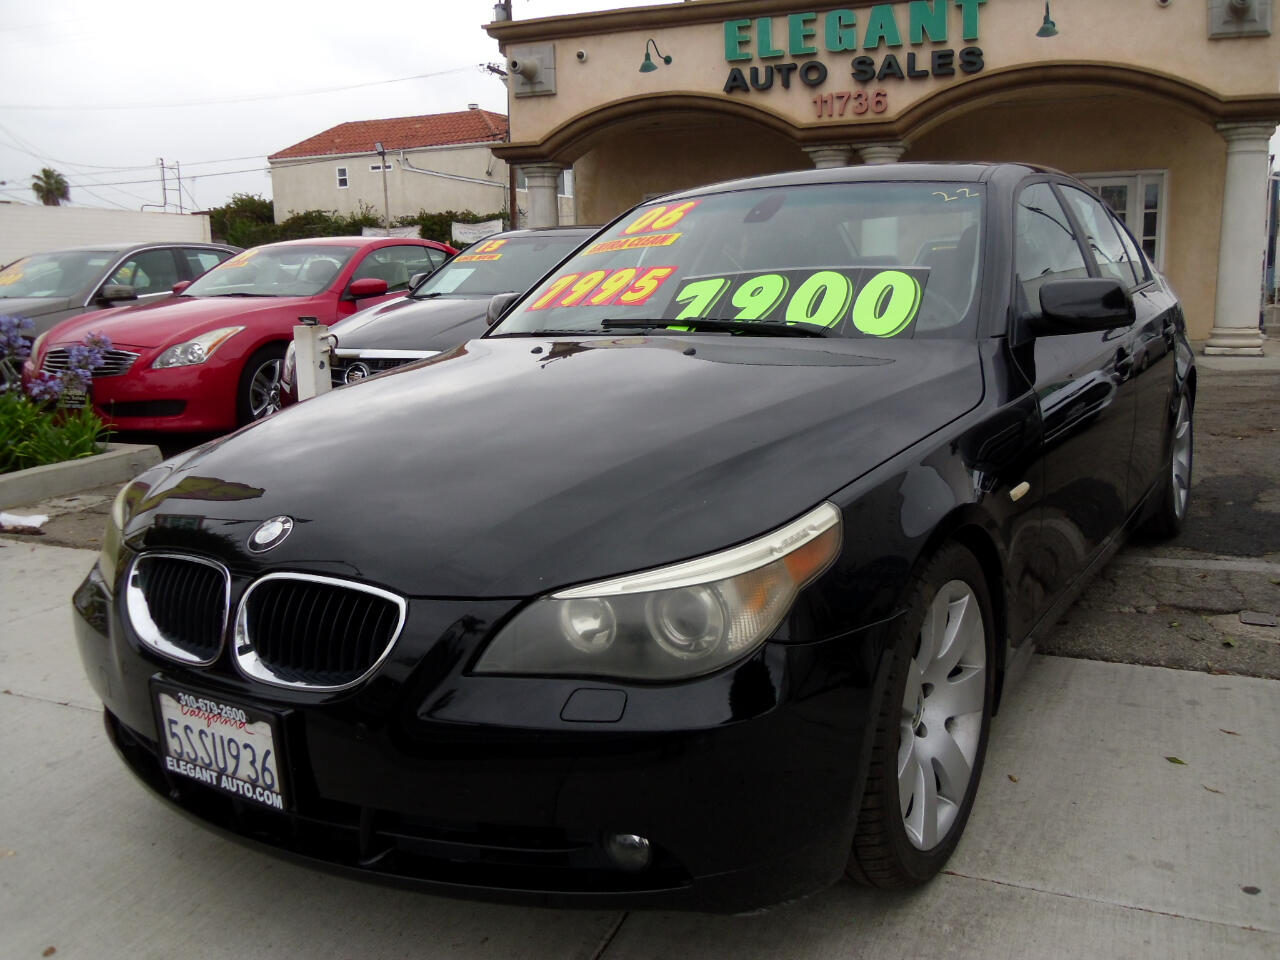 Elegant Auto Sales >> Used Cars For Sale Hawthorne Ca 90250 Elegant Auto Sales